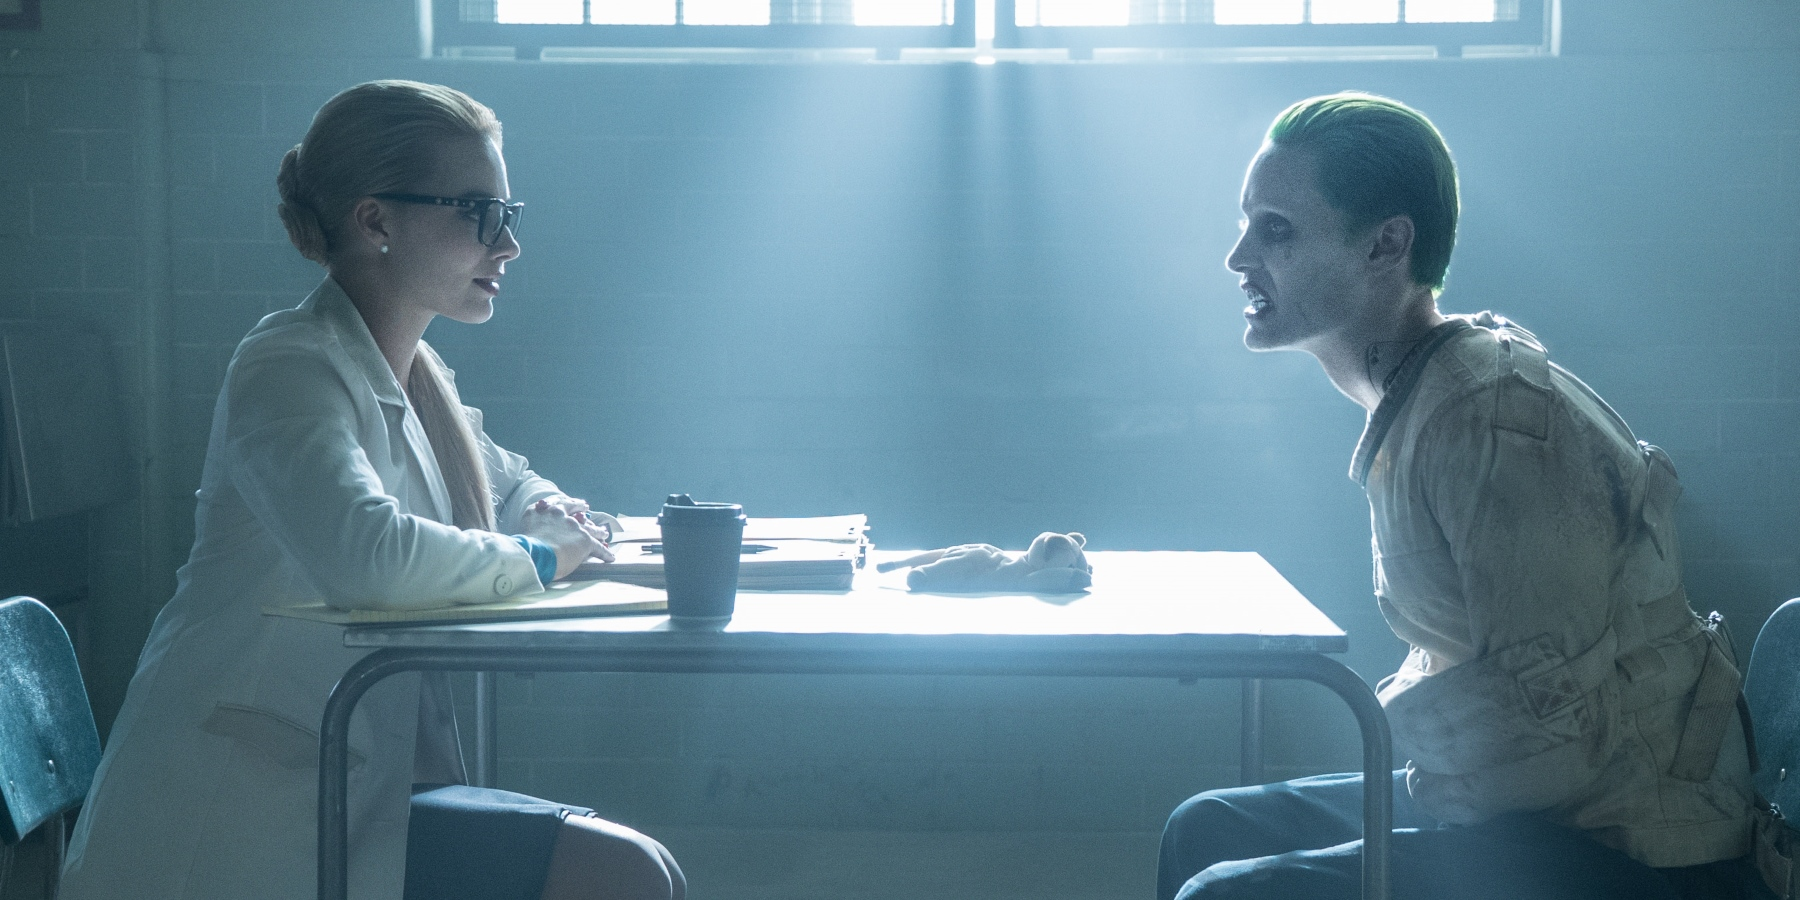 Harleen Quinzel and the Joker sit across from each other at a table.